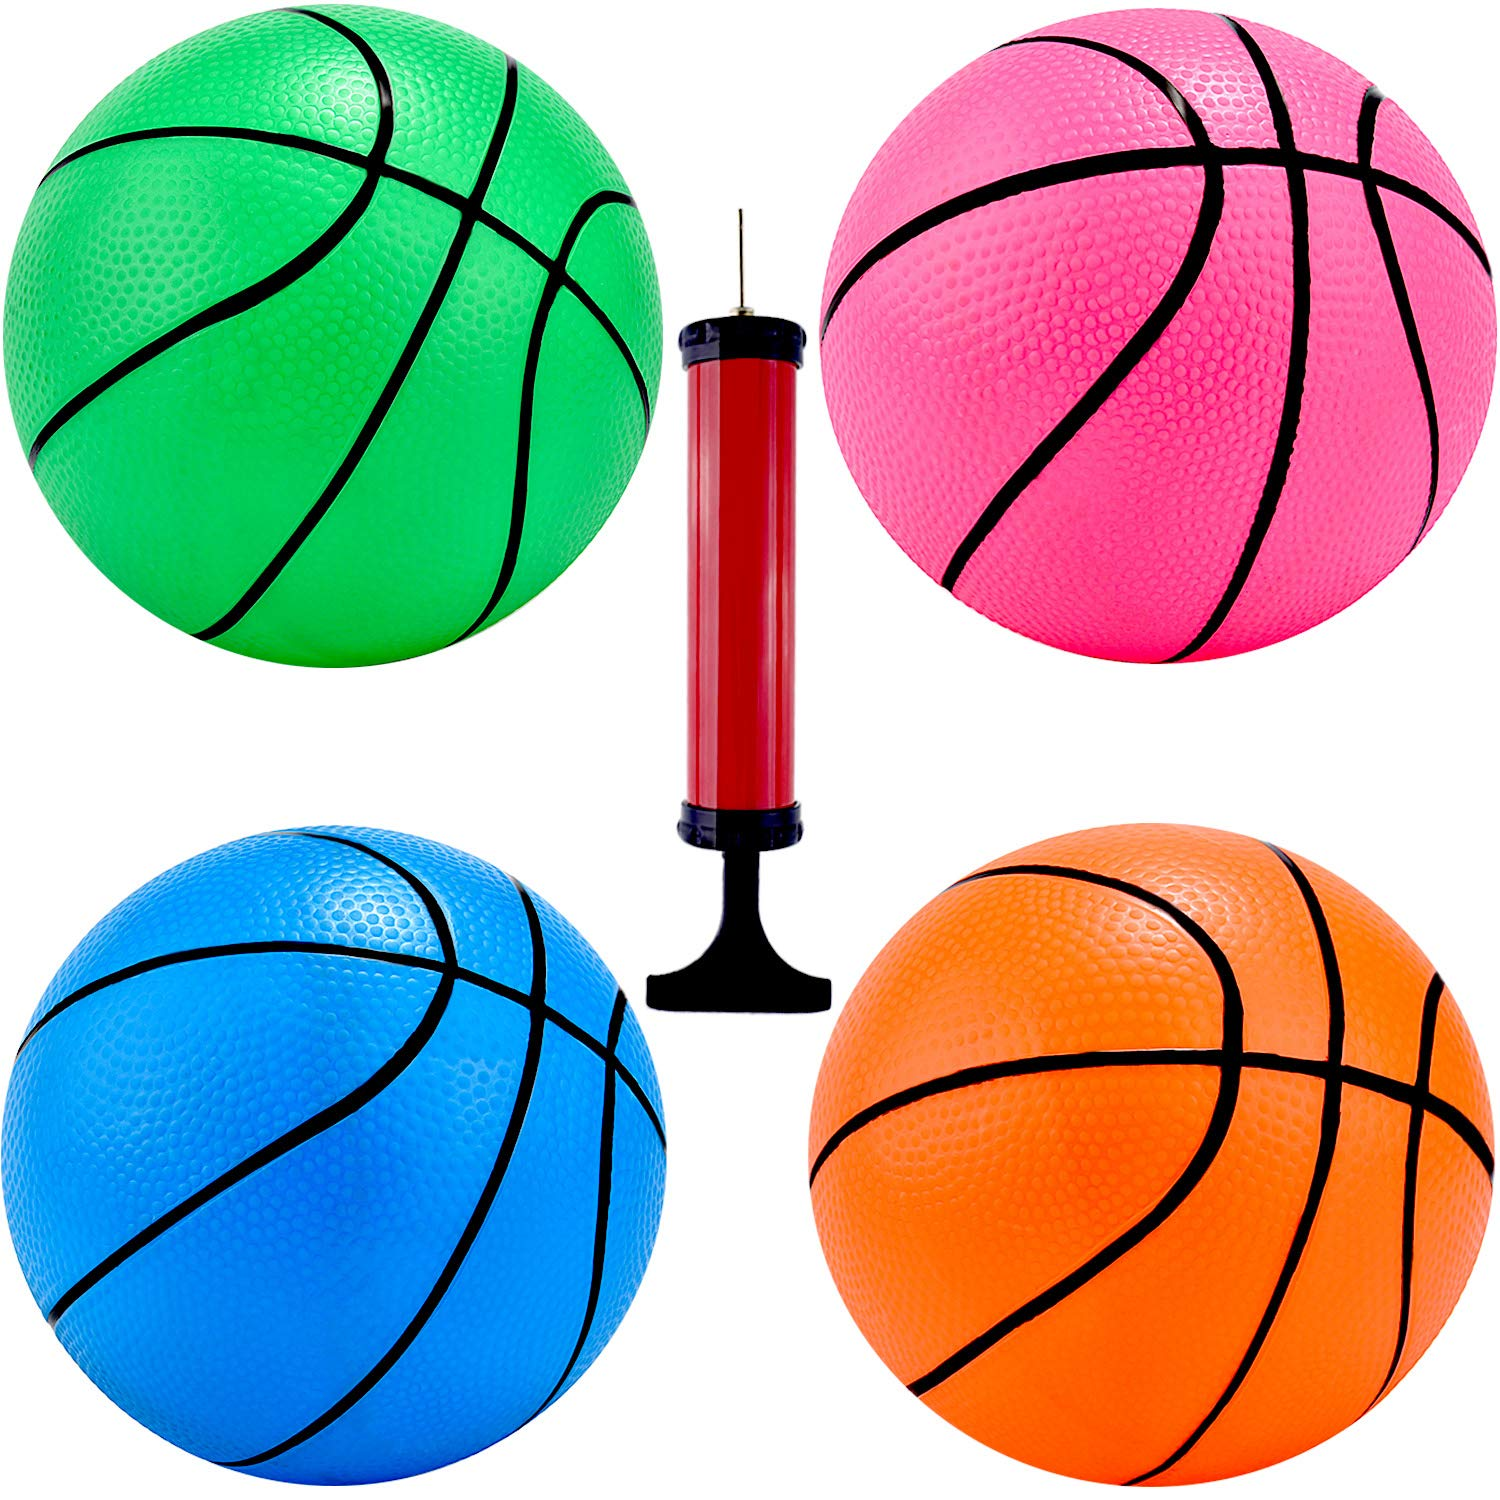 4 Pieces Mini Basketball Inflation Mini Ball with Pump and Basketball Needles, 4 Colors (4 Inch) by TecUnite